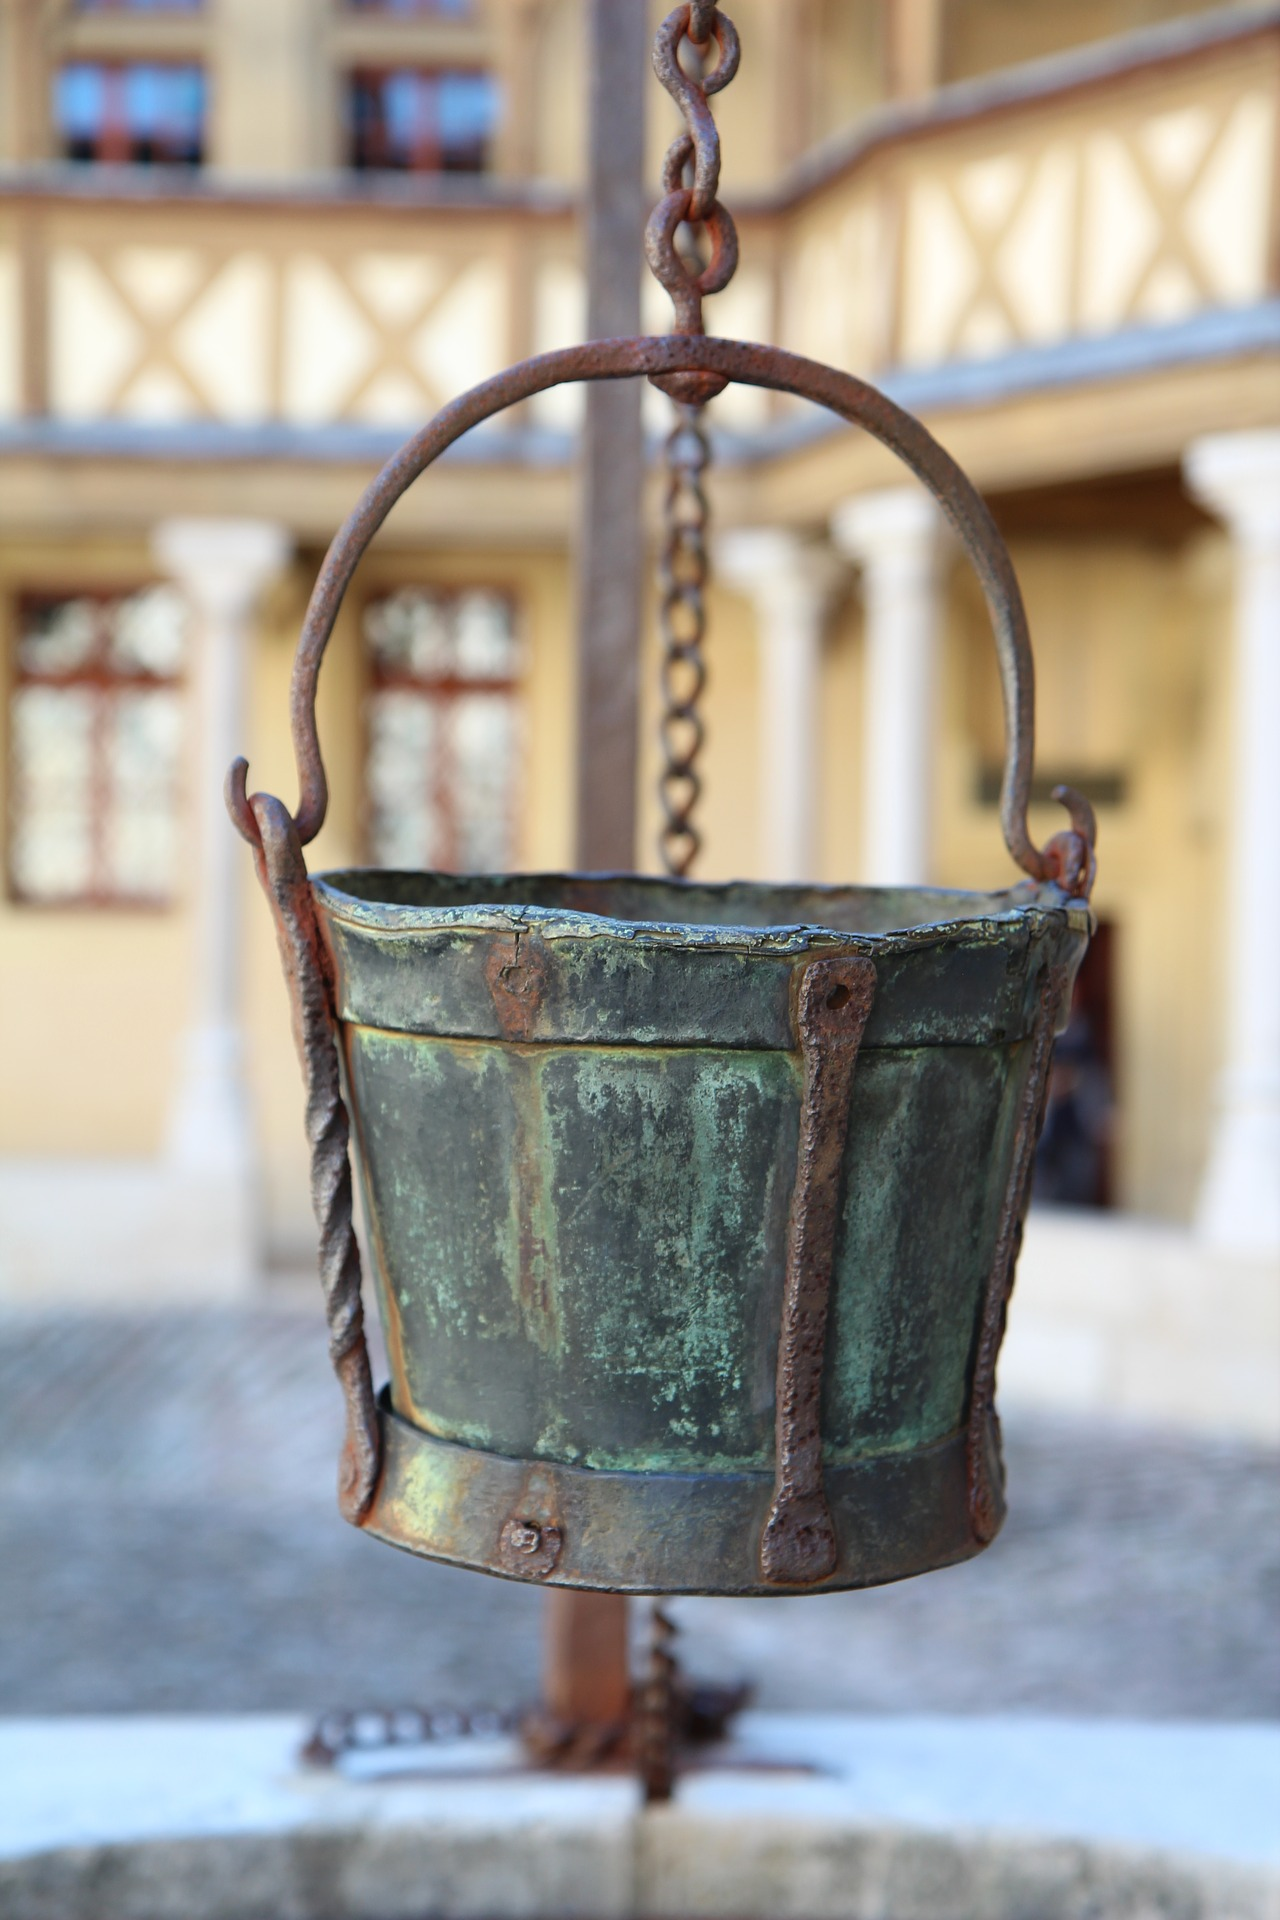 The Bucket - An Italian Folktale